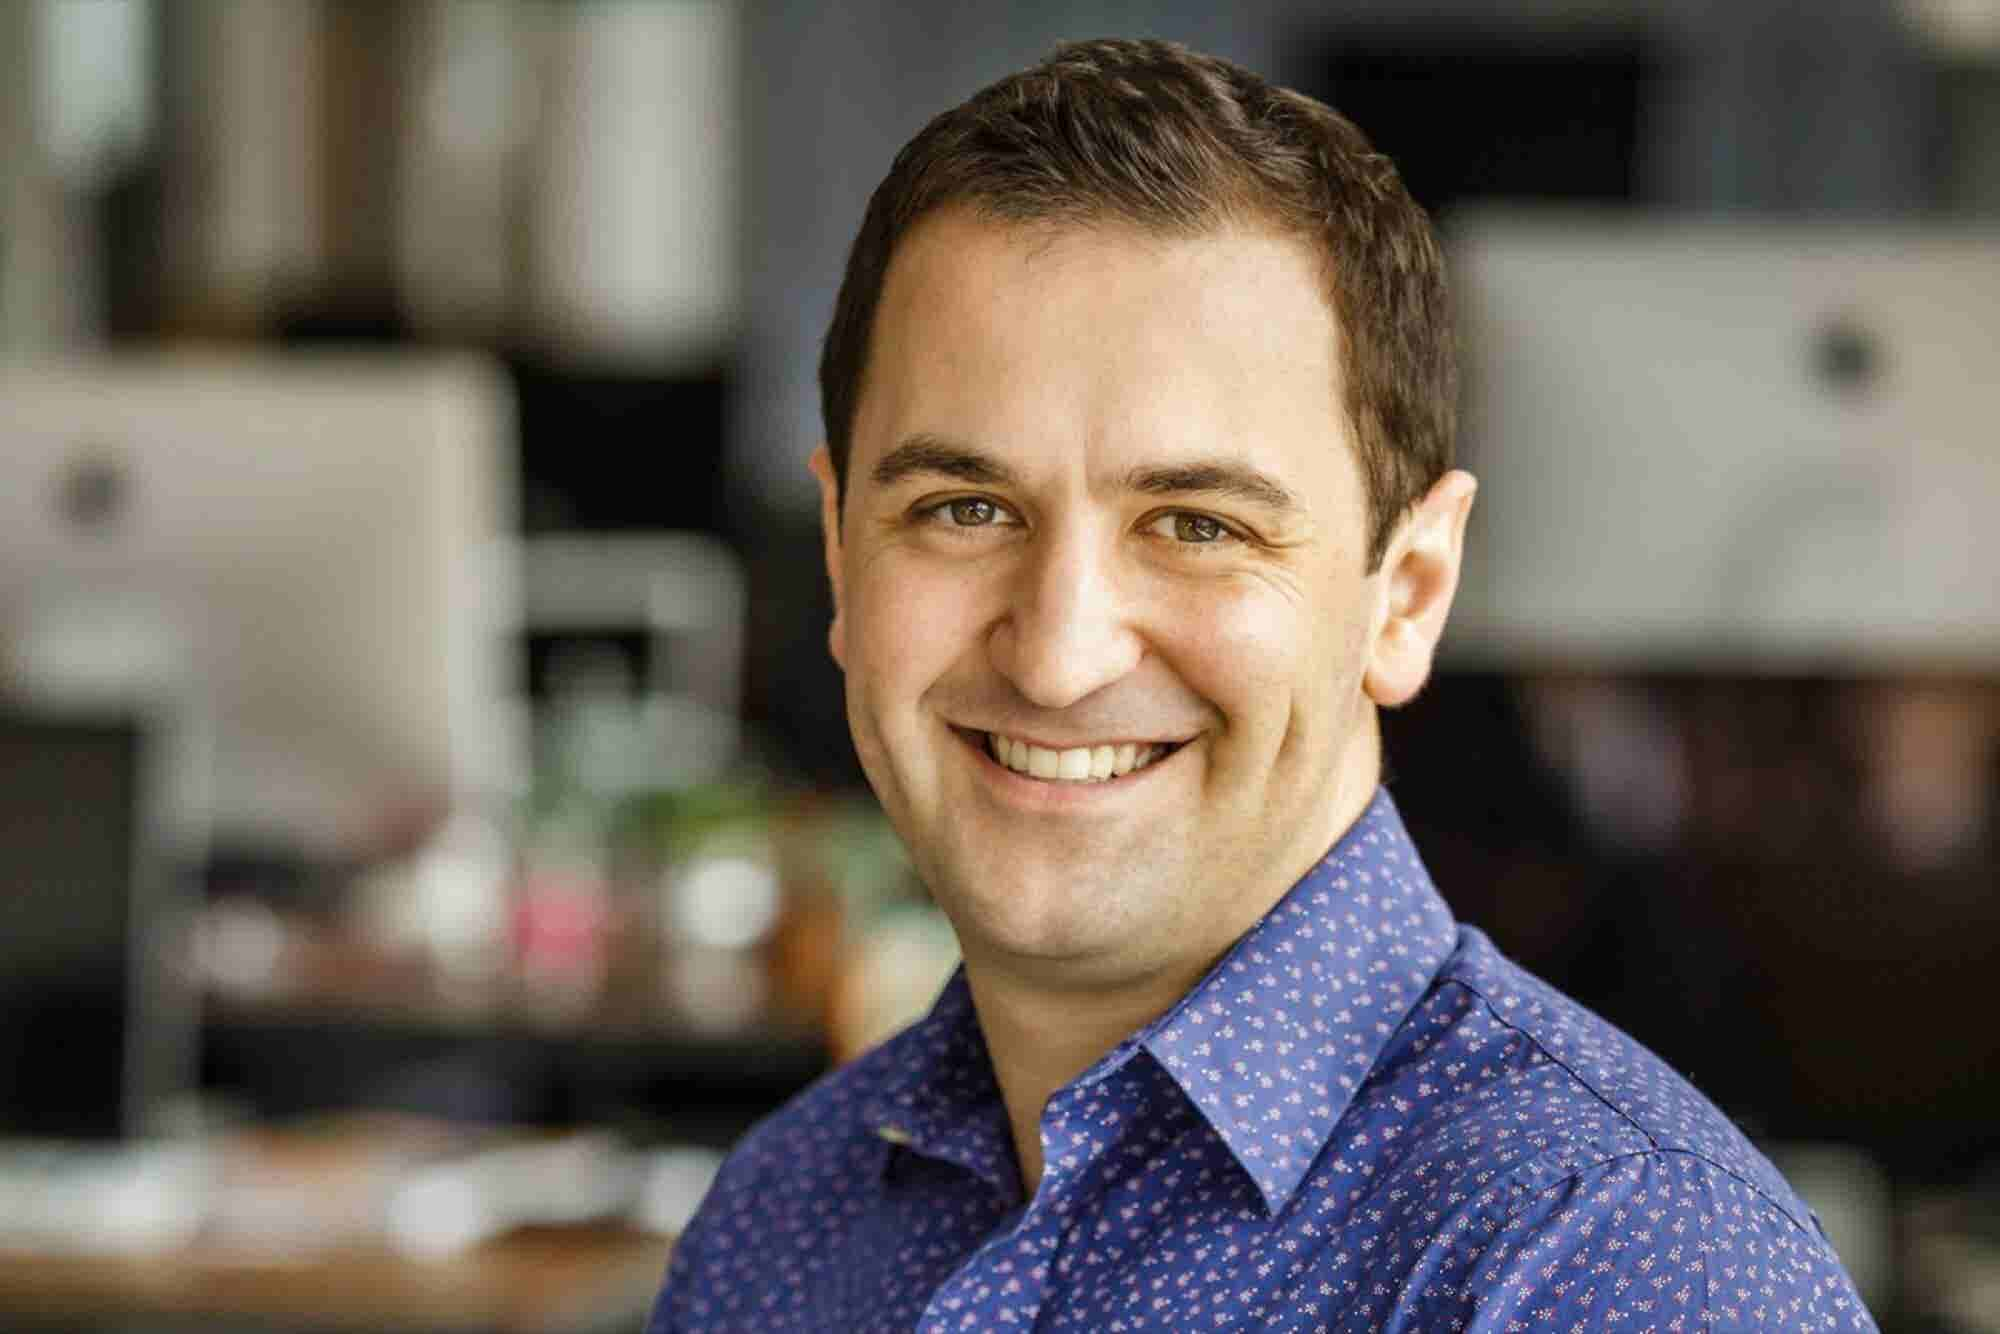 Lyft Co-Founder John Zimmer: 'You Should Never Veer Off the Path of Your Own Values'